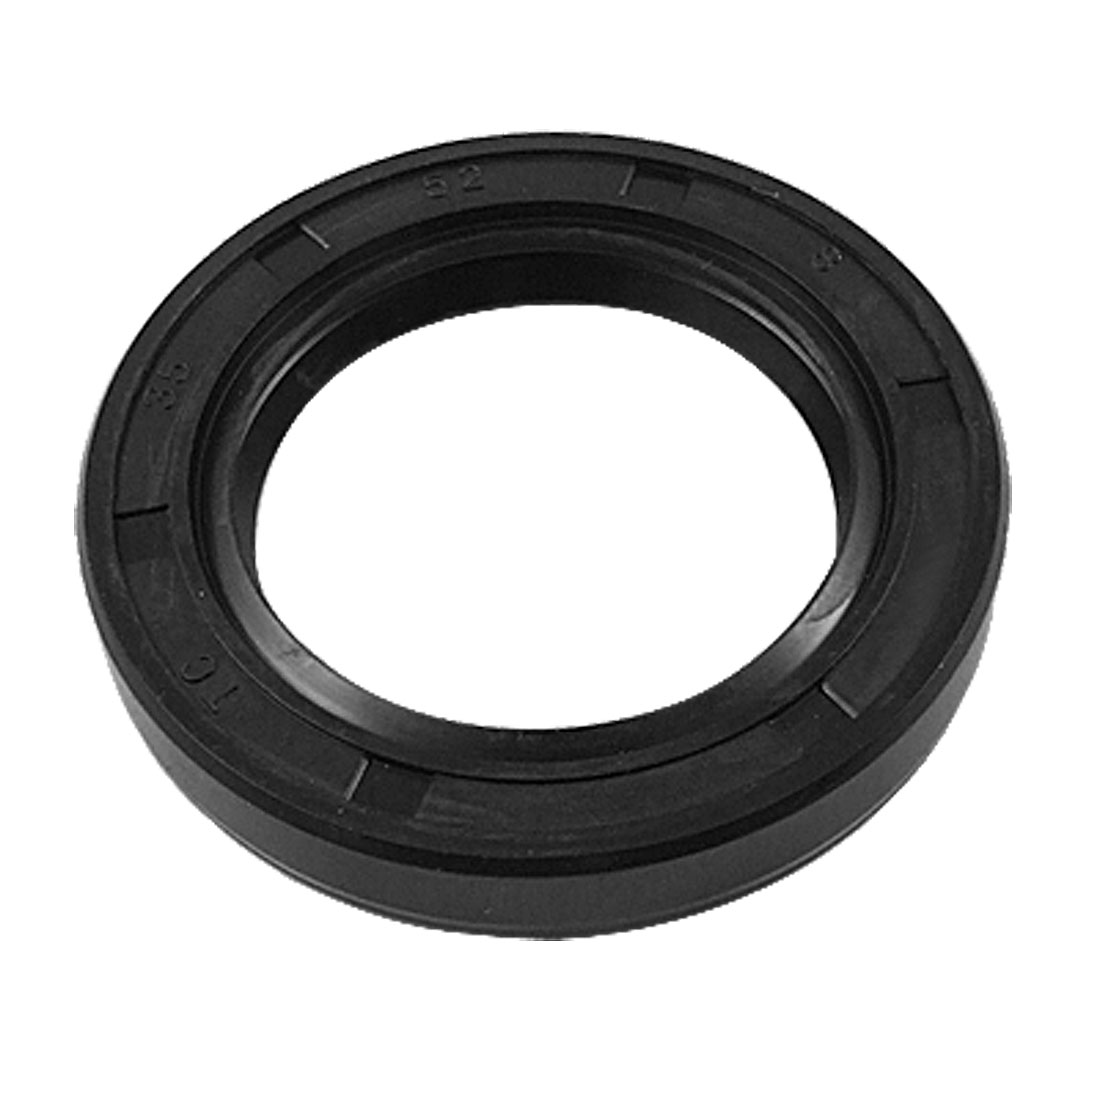 uxcell Spring Loaded Metric TC Oil Seal Double Lip 20x30x7mm for Automotive